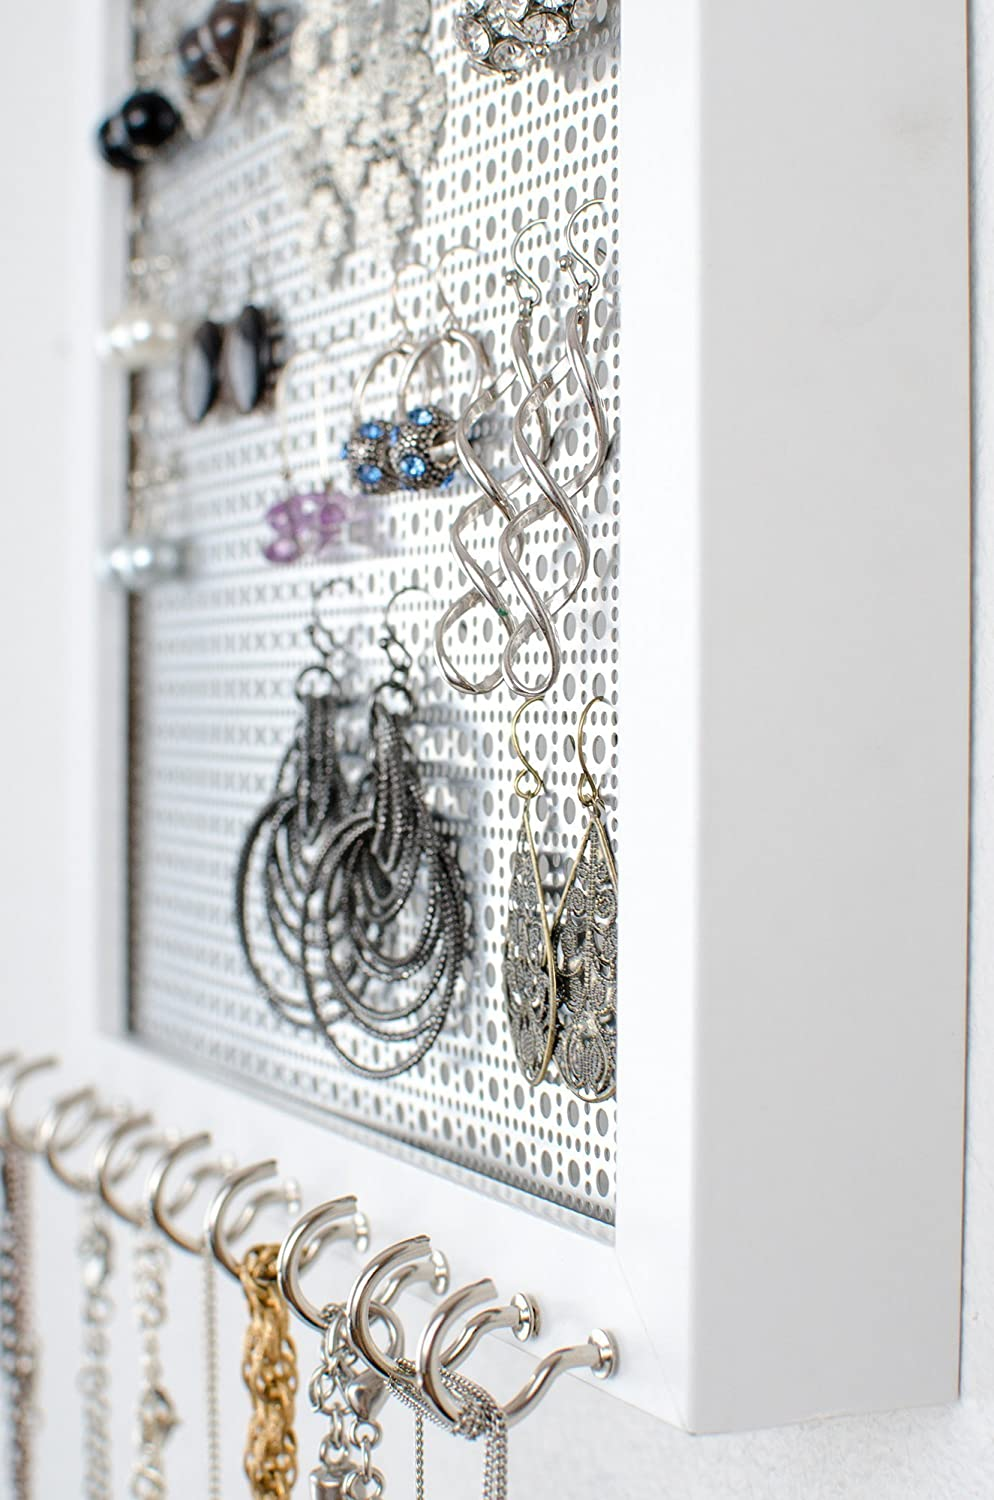 Hanging Earring & Necklace Organizer - 8x10 White Frame - Metal Screen - Necklace Hooks